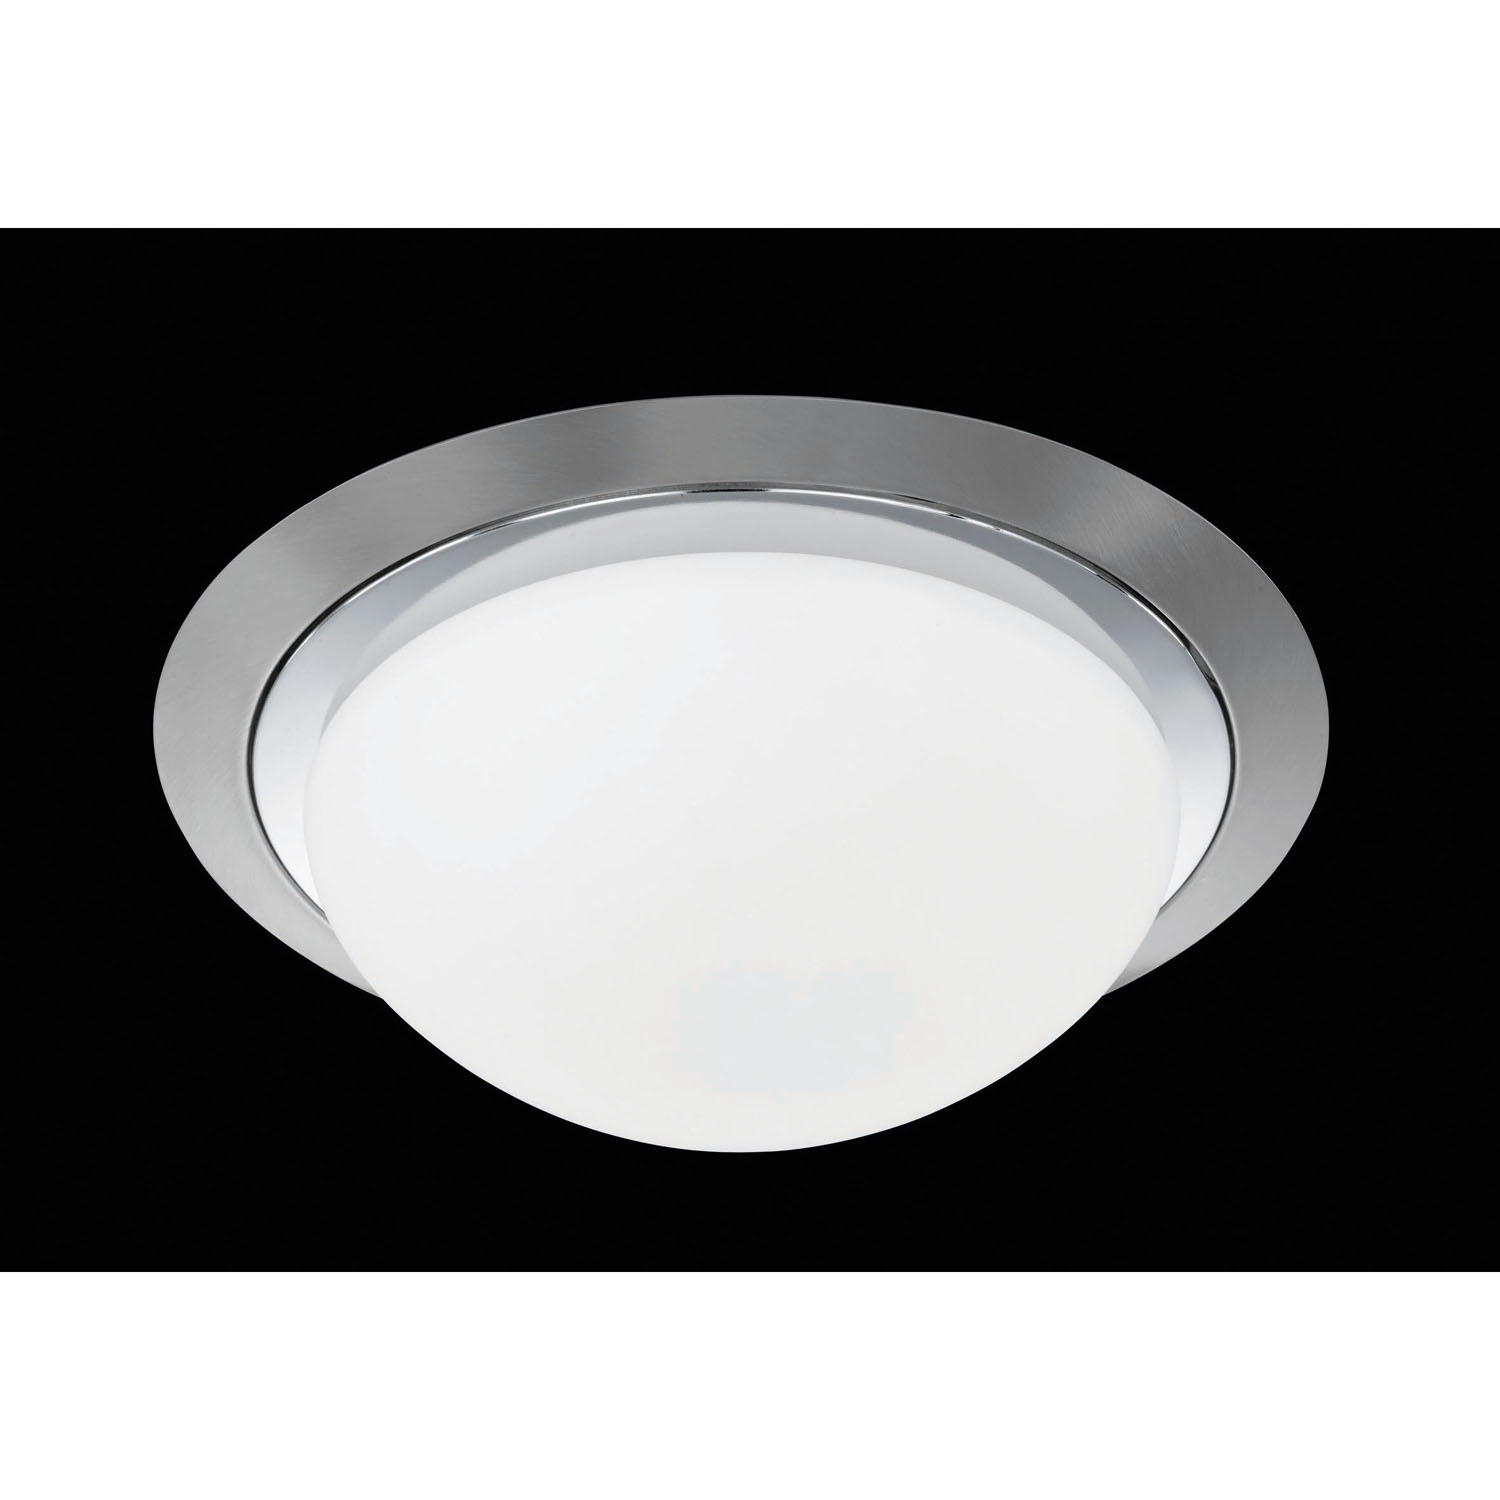 small ceiling light shades photo - 2